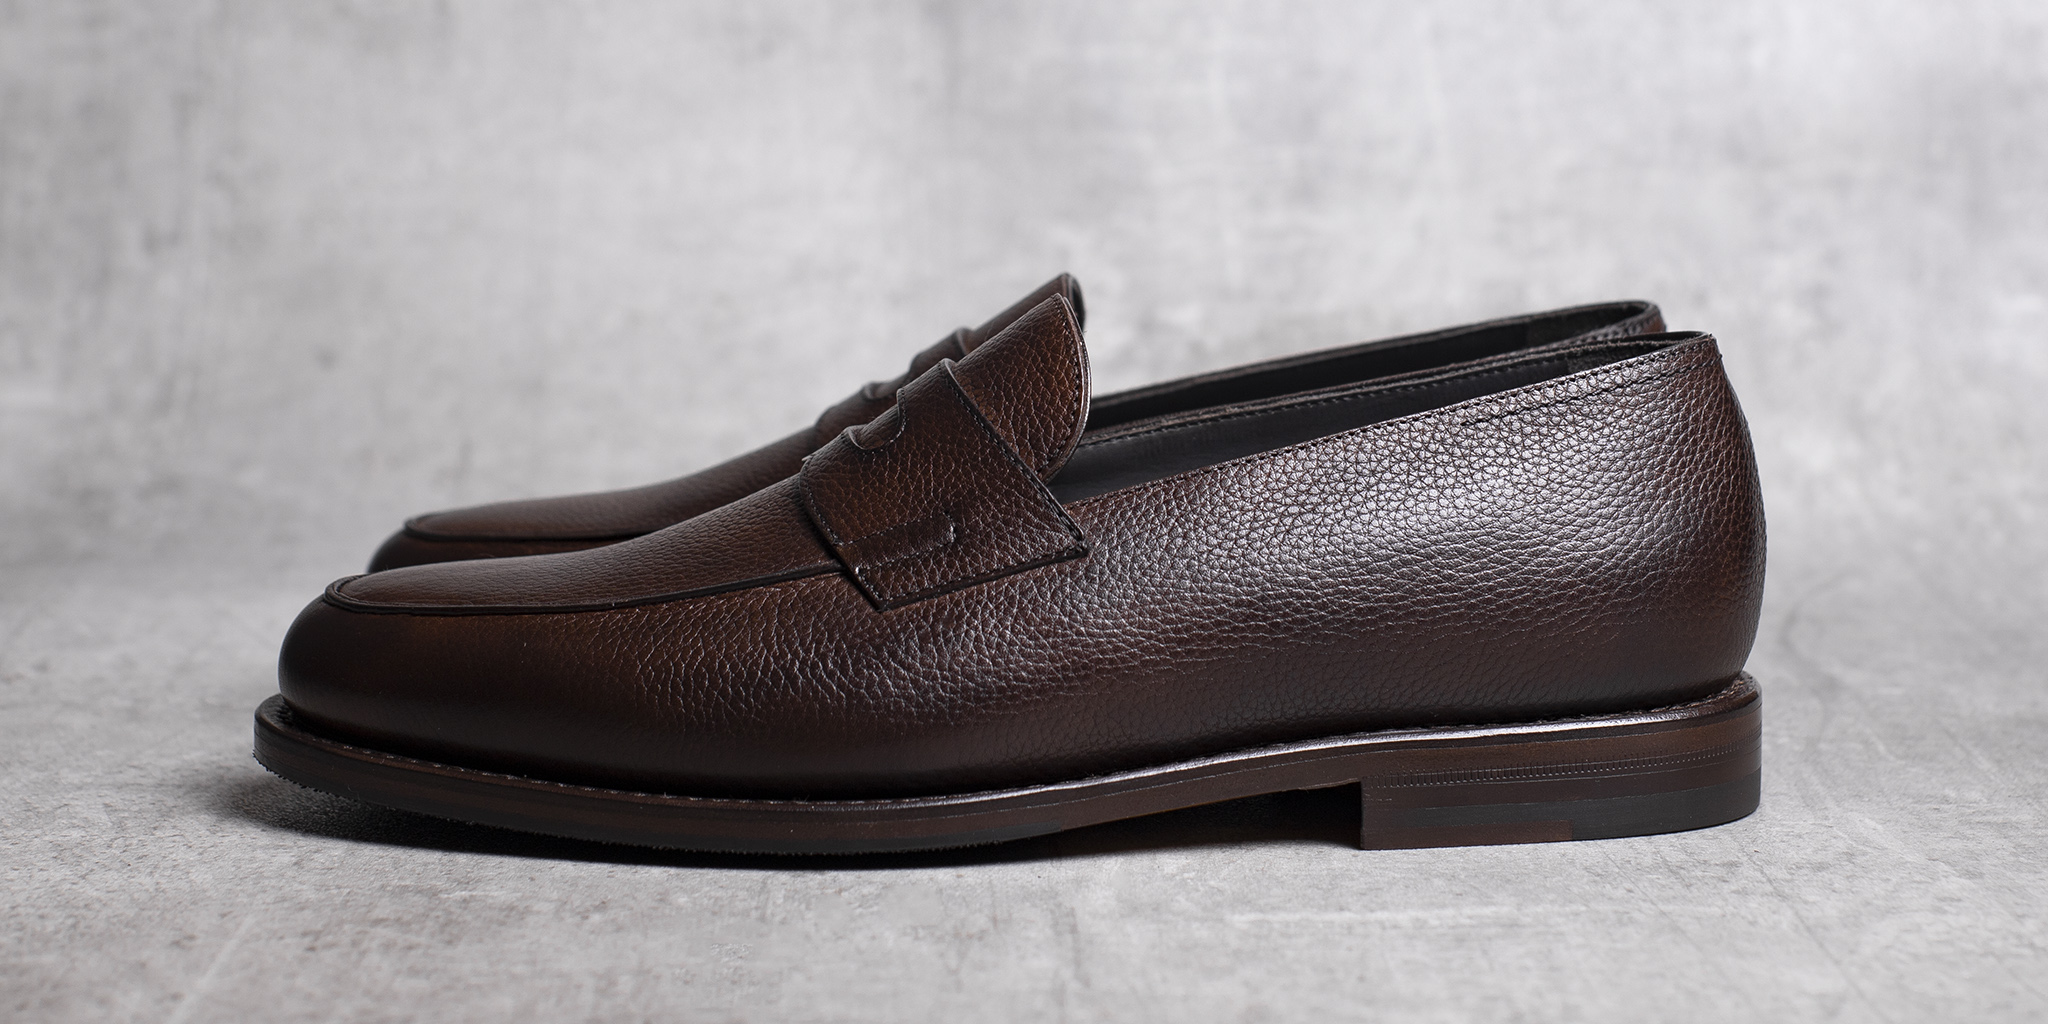 LOAFERS · 0647 Grain leather Toffee 3